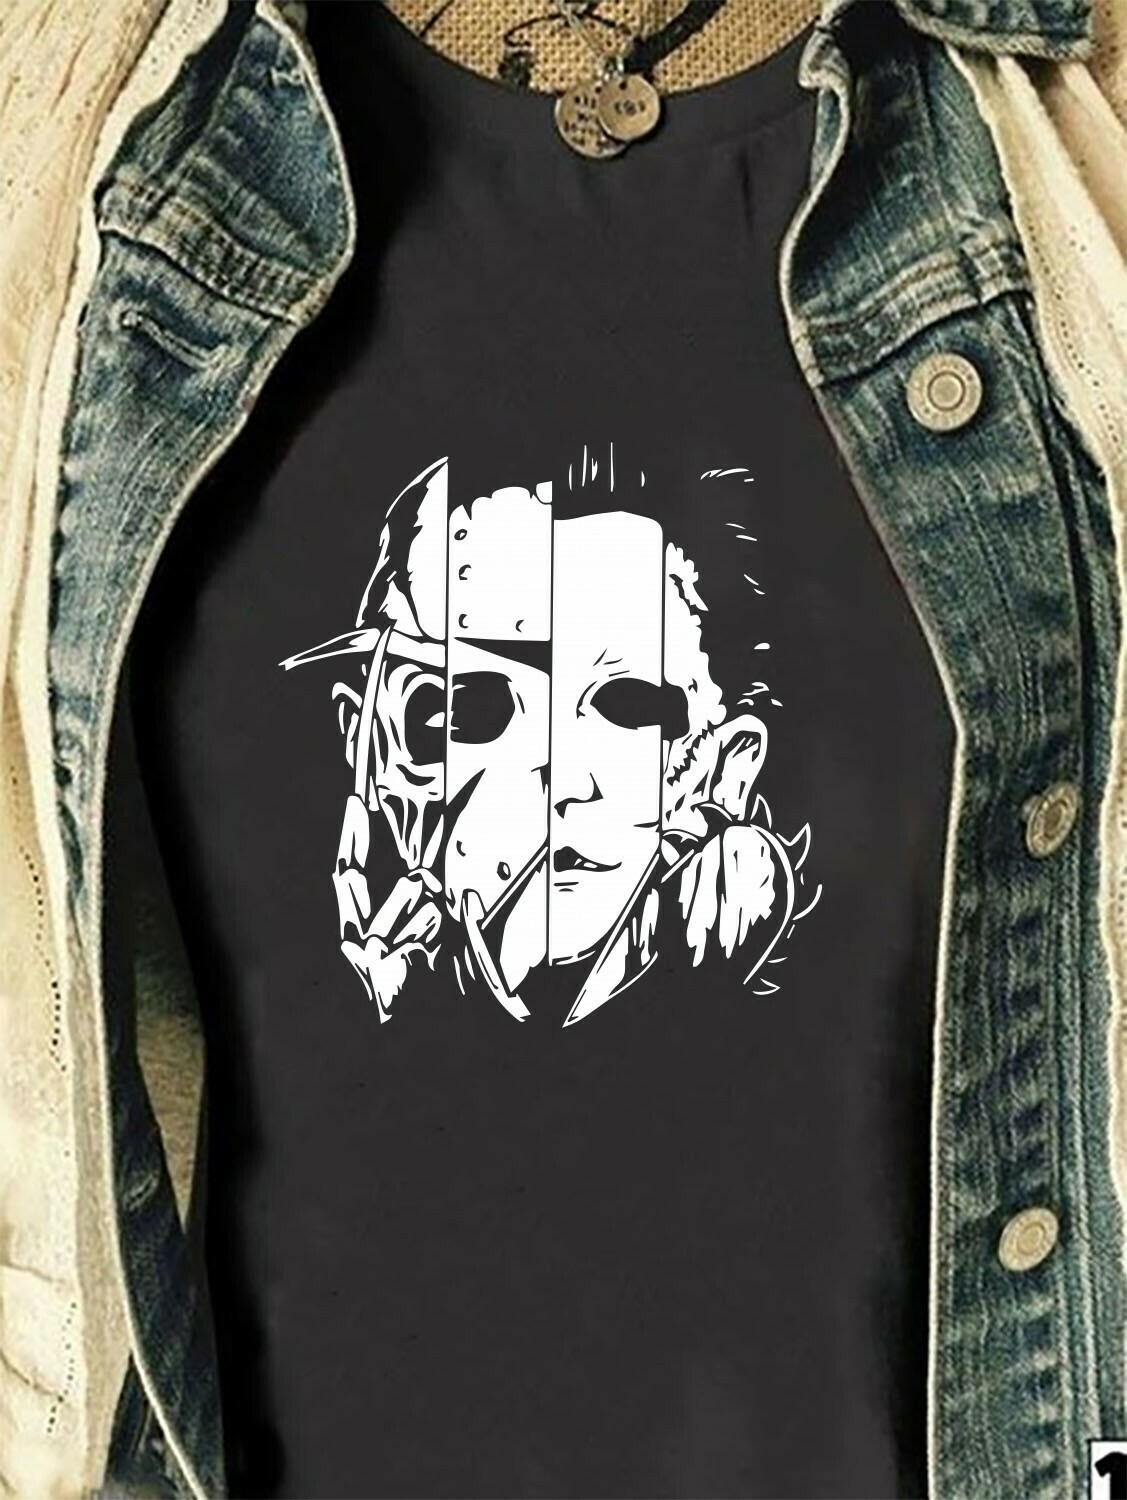 Horror Face Friday The 13th Villains Halloween Movie Horror Squad Freddy Krueger Michael Myers Jason Voorhees Scary Not So Scary T-Shirt Long Sleeve Sweatshirt Hoodie Jolly Family Gifts